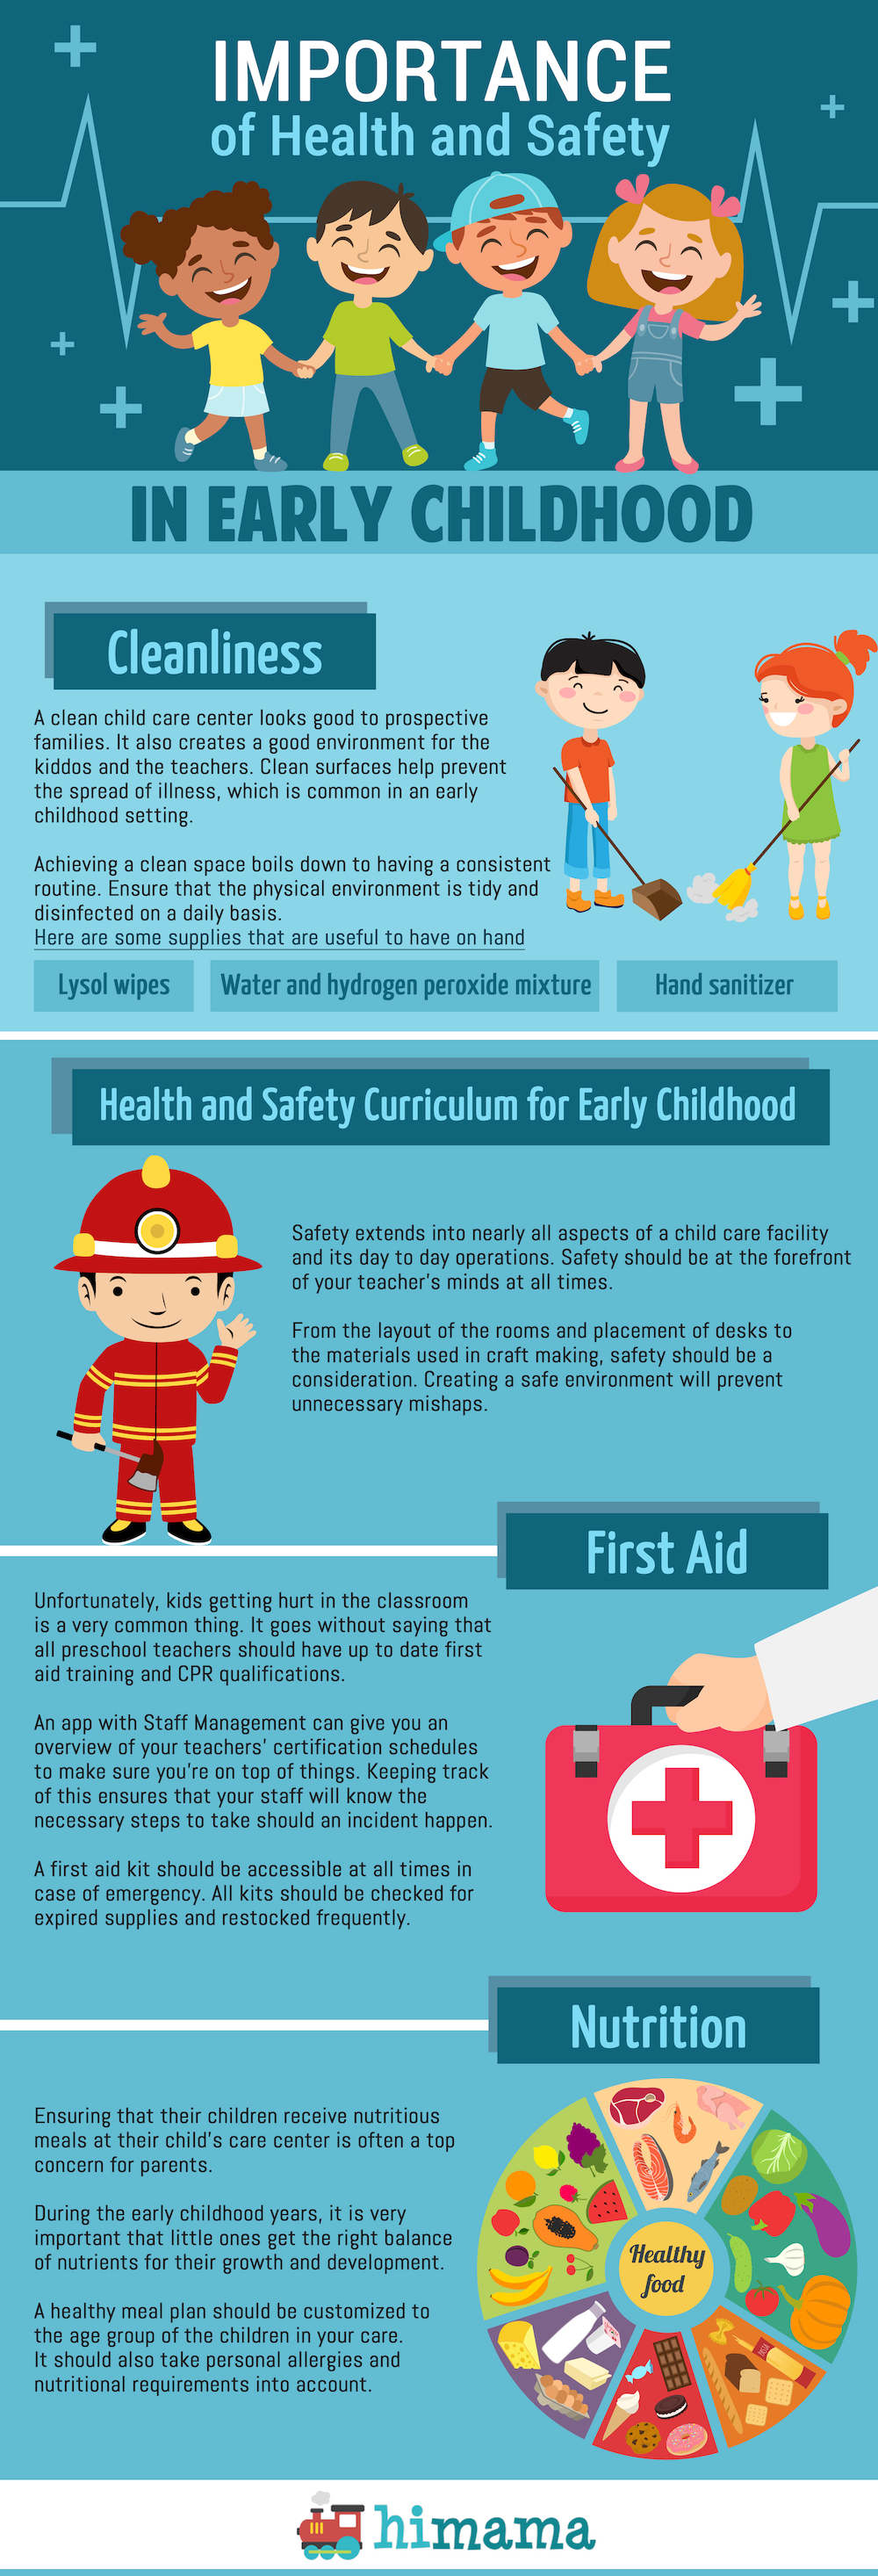 Importance of Health and Safety in Early Childhood